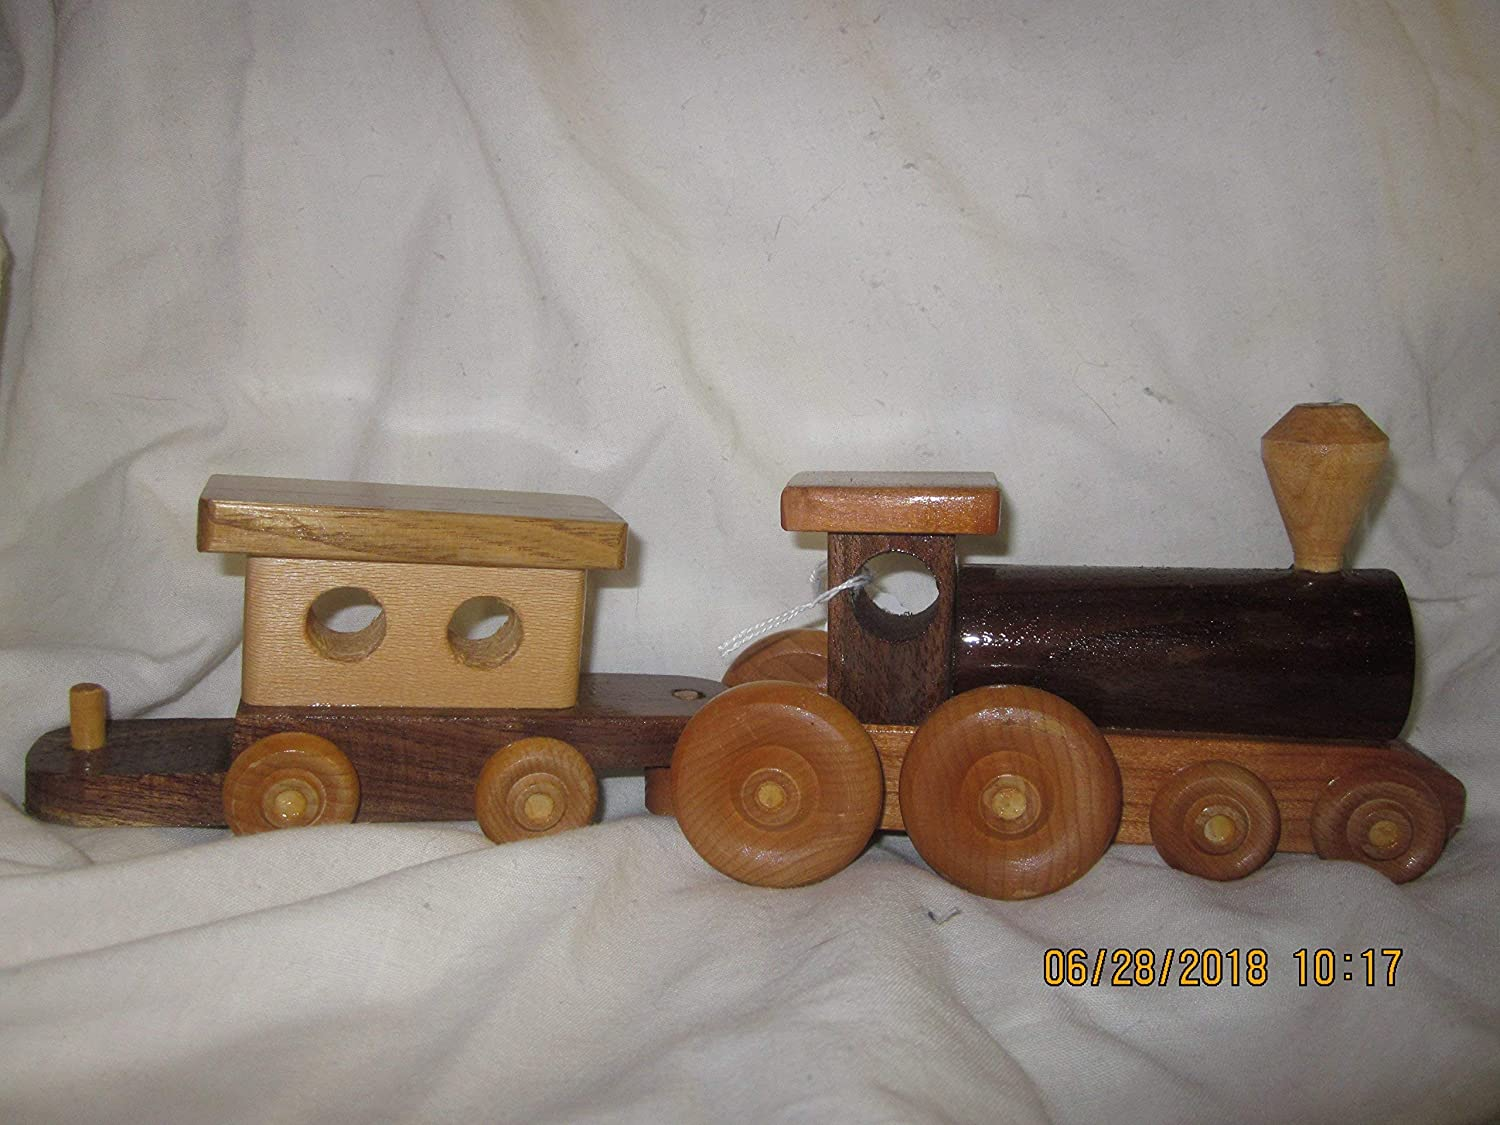 Wood Train Engine With Caboose